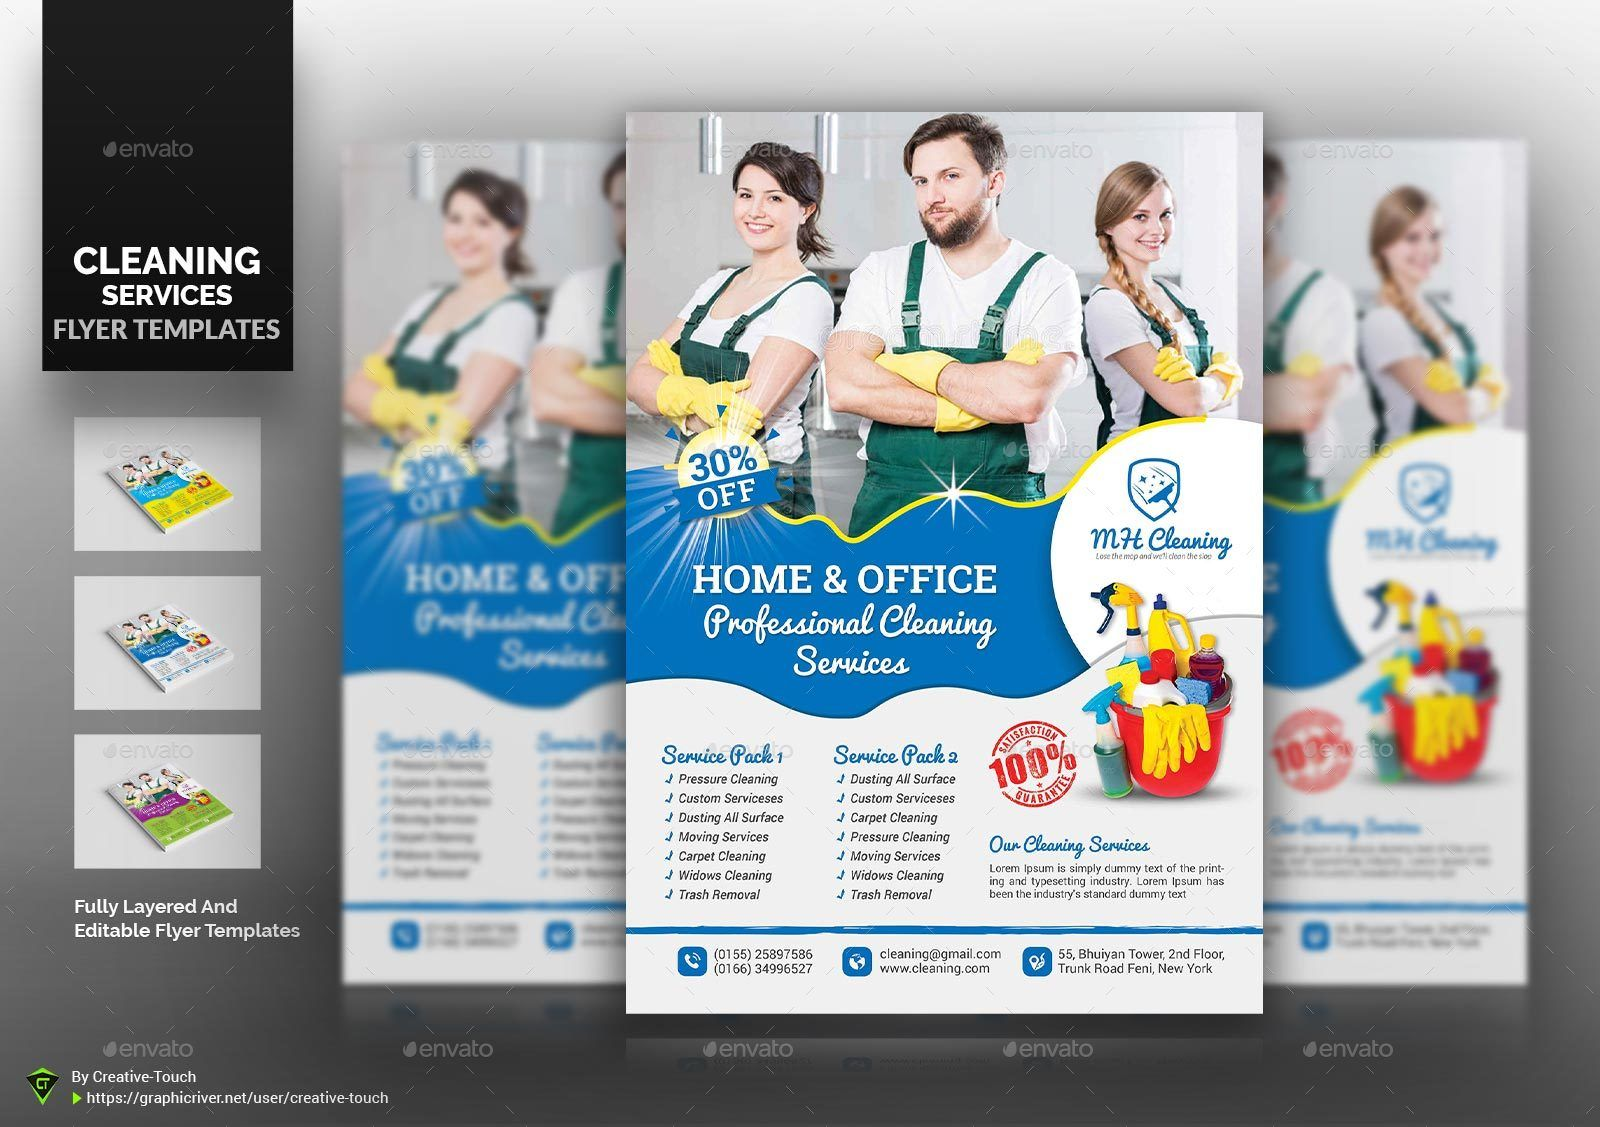 Cleaning Services Flyer Templates Ad Advertisement Flyer Carpet